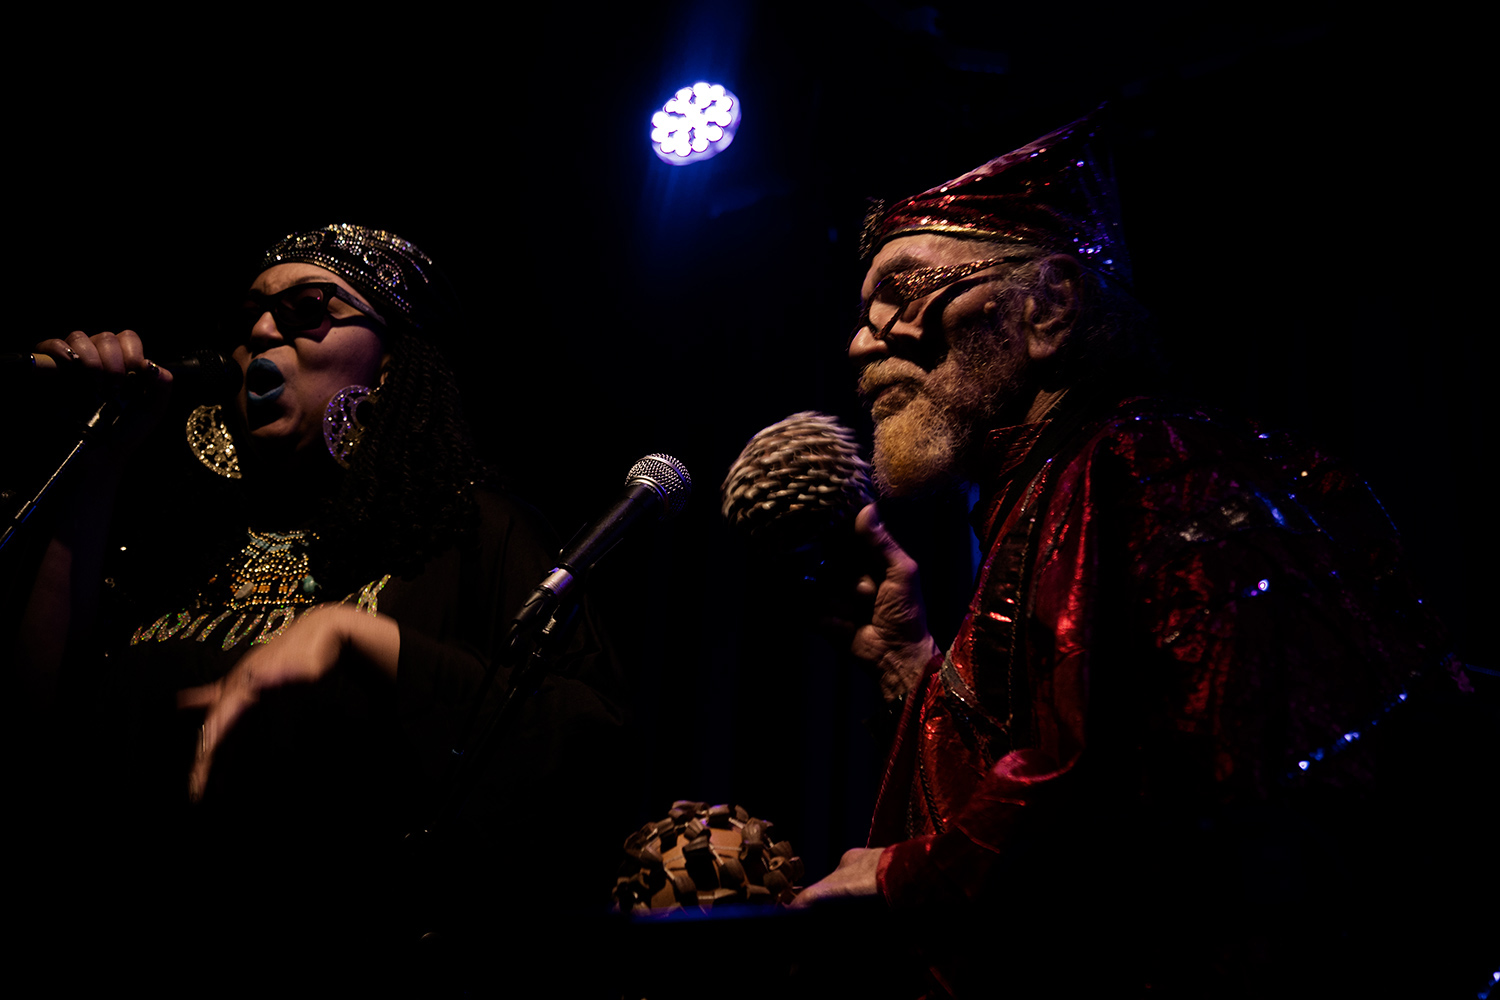 Sun Ra Arkestra directed by Marshall Allen by Laurent Orseau - Concert - Les Ateliers Claus - Brussels, Belgium #11